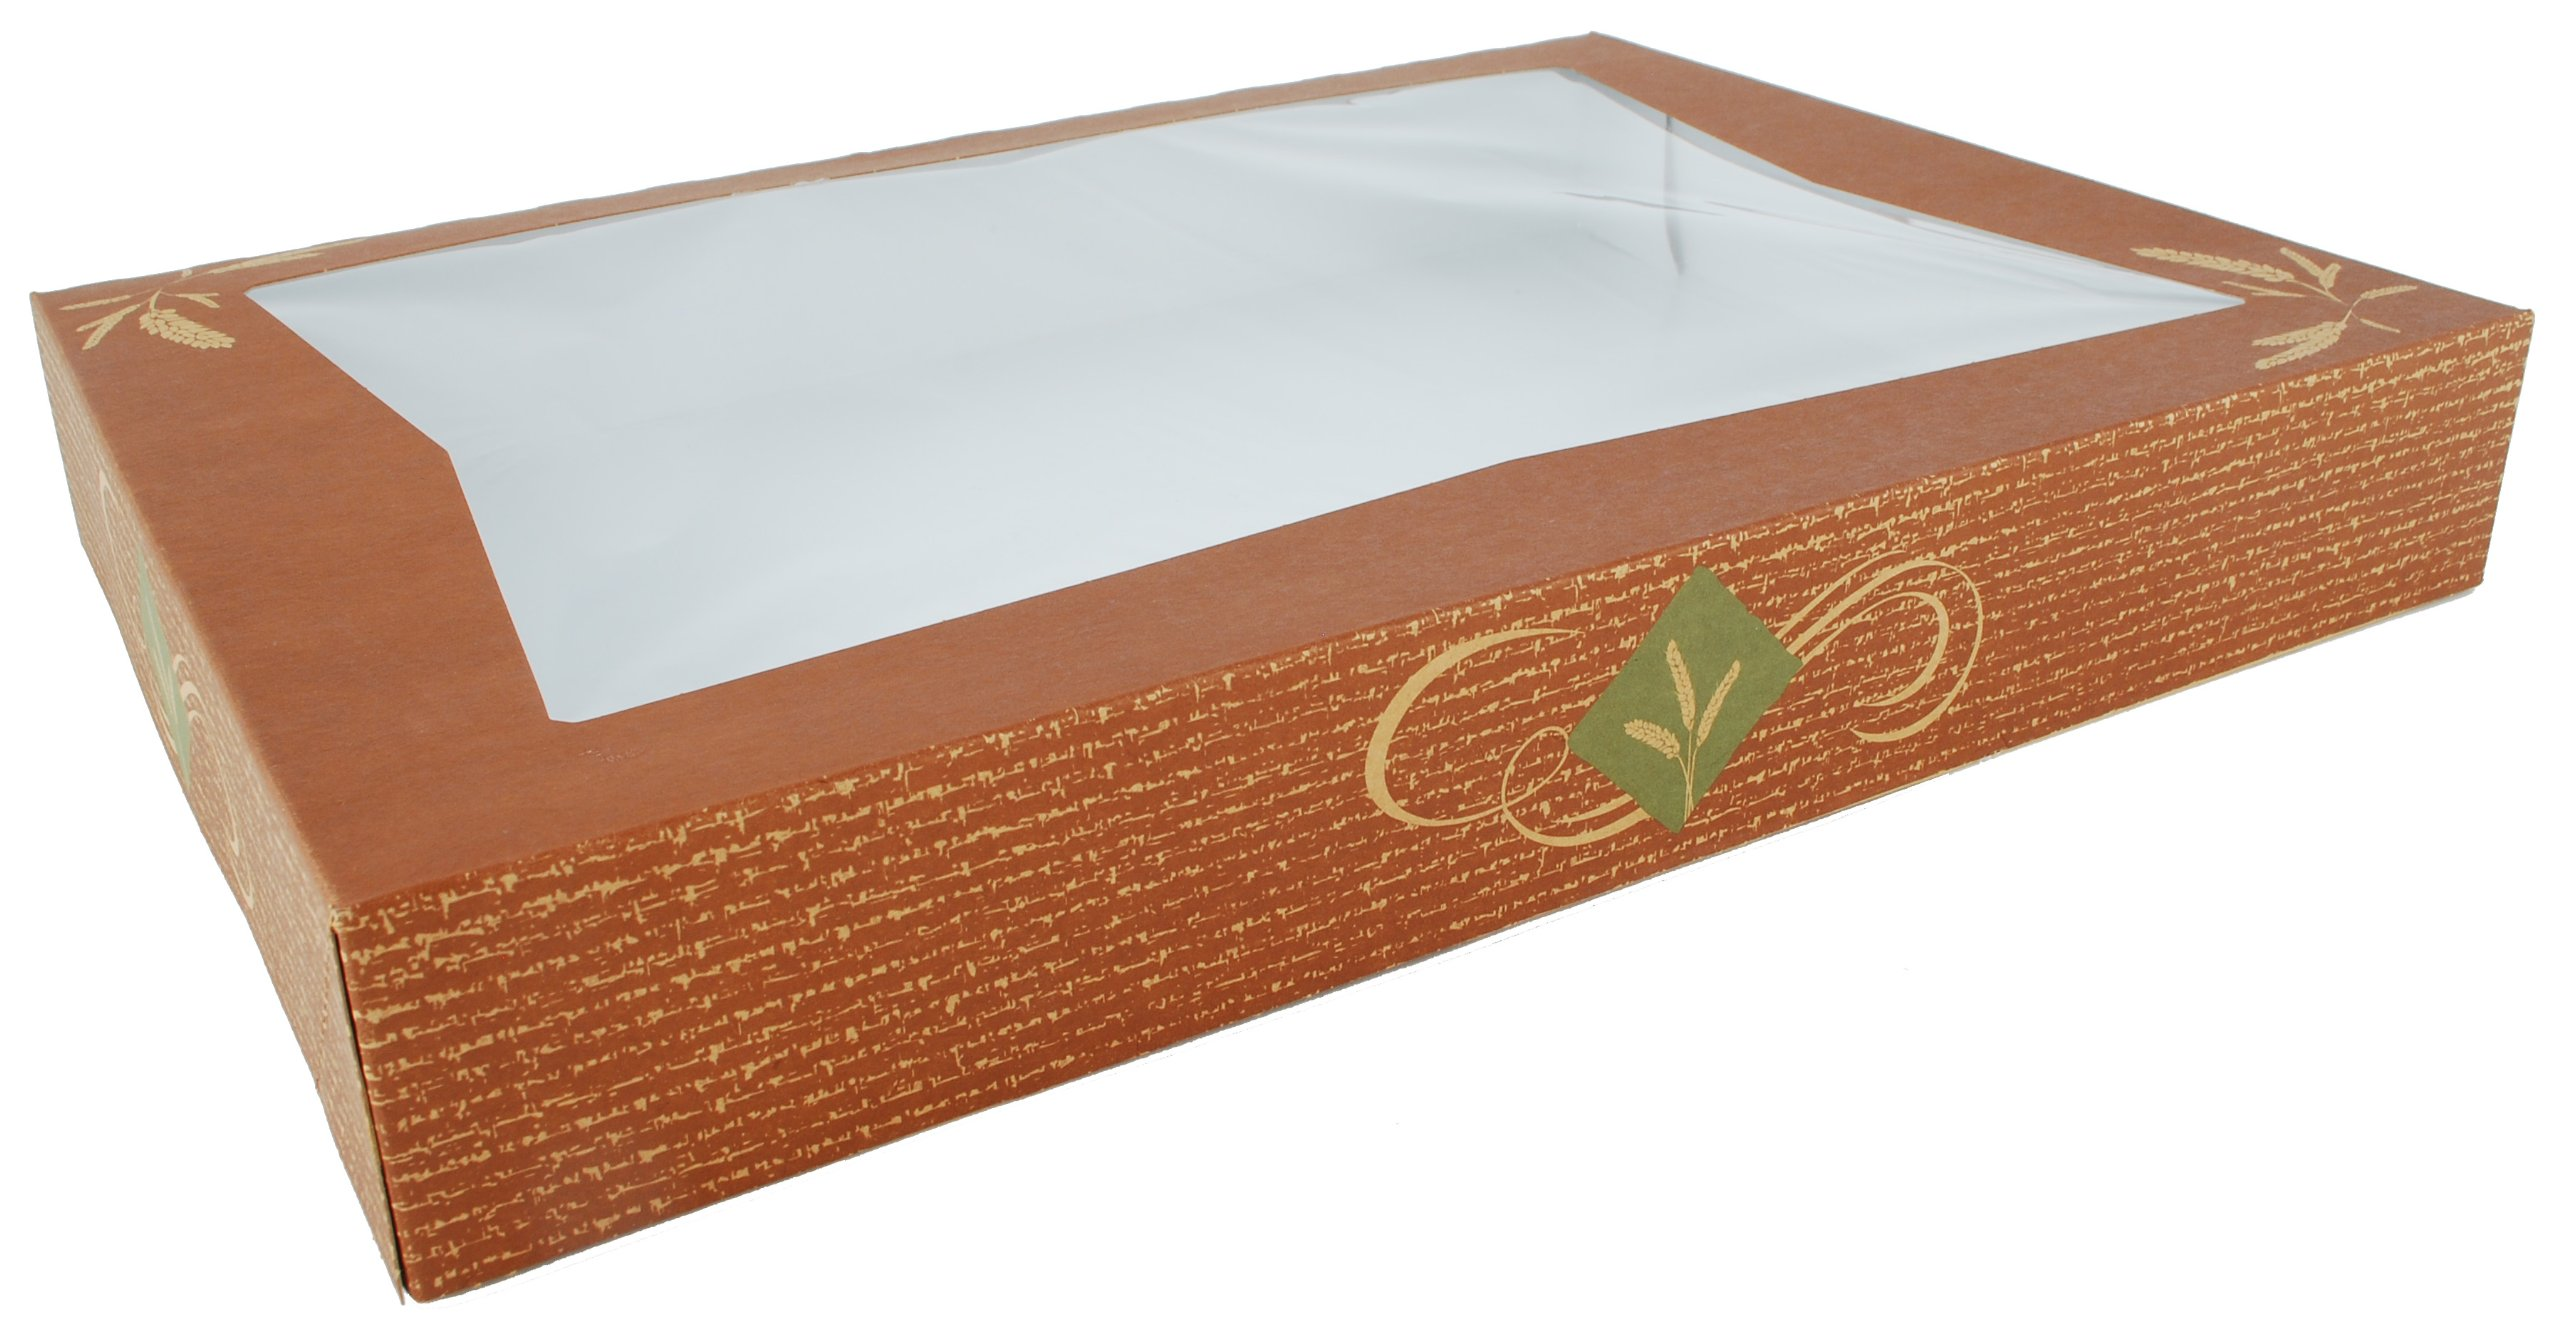 Southern Champion Tray 24546 Clay Coated Kraft Paperboard Hearthstone Window Bakery Box, 16'' Length x 12'' Width x 2-1/4'' Height (Case of 100)